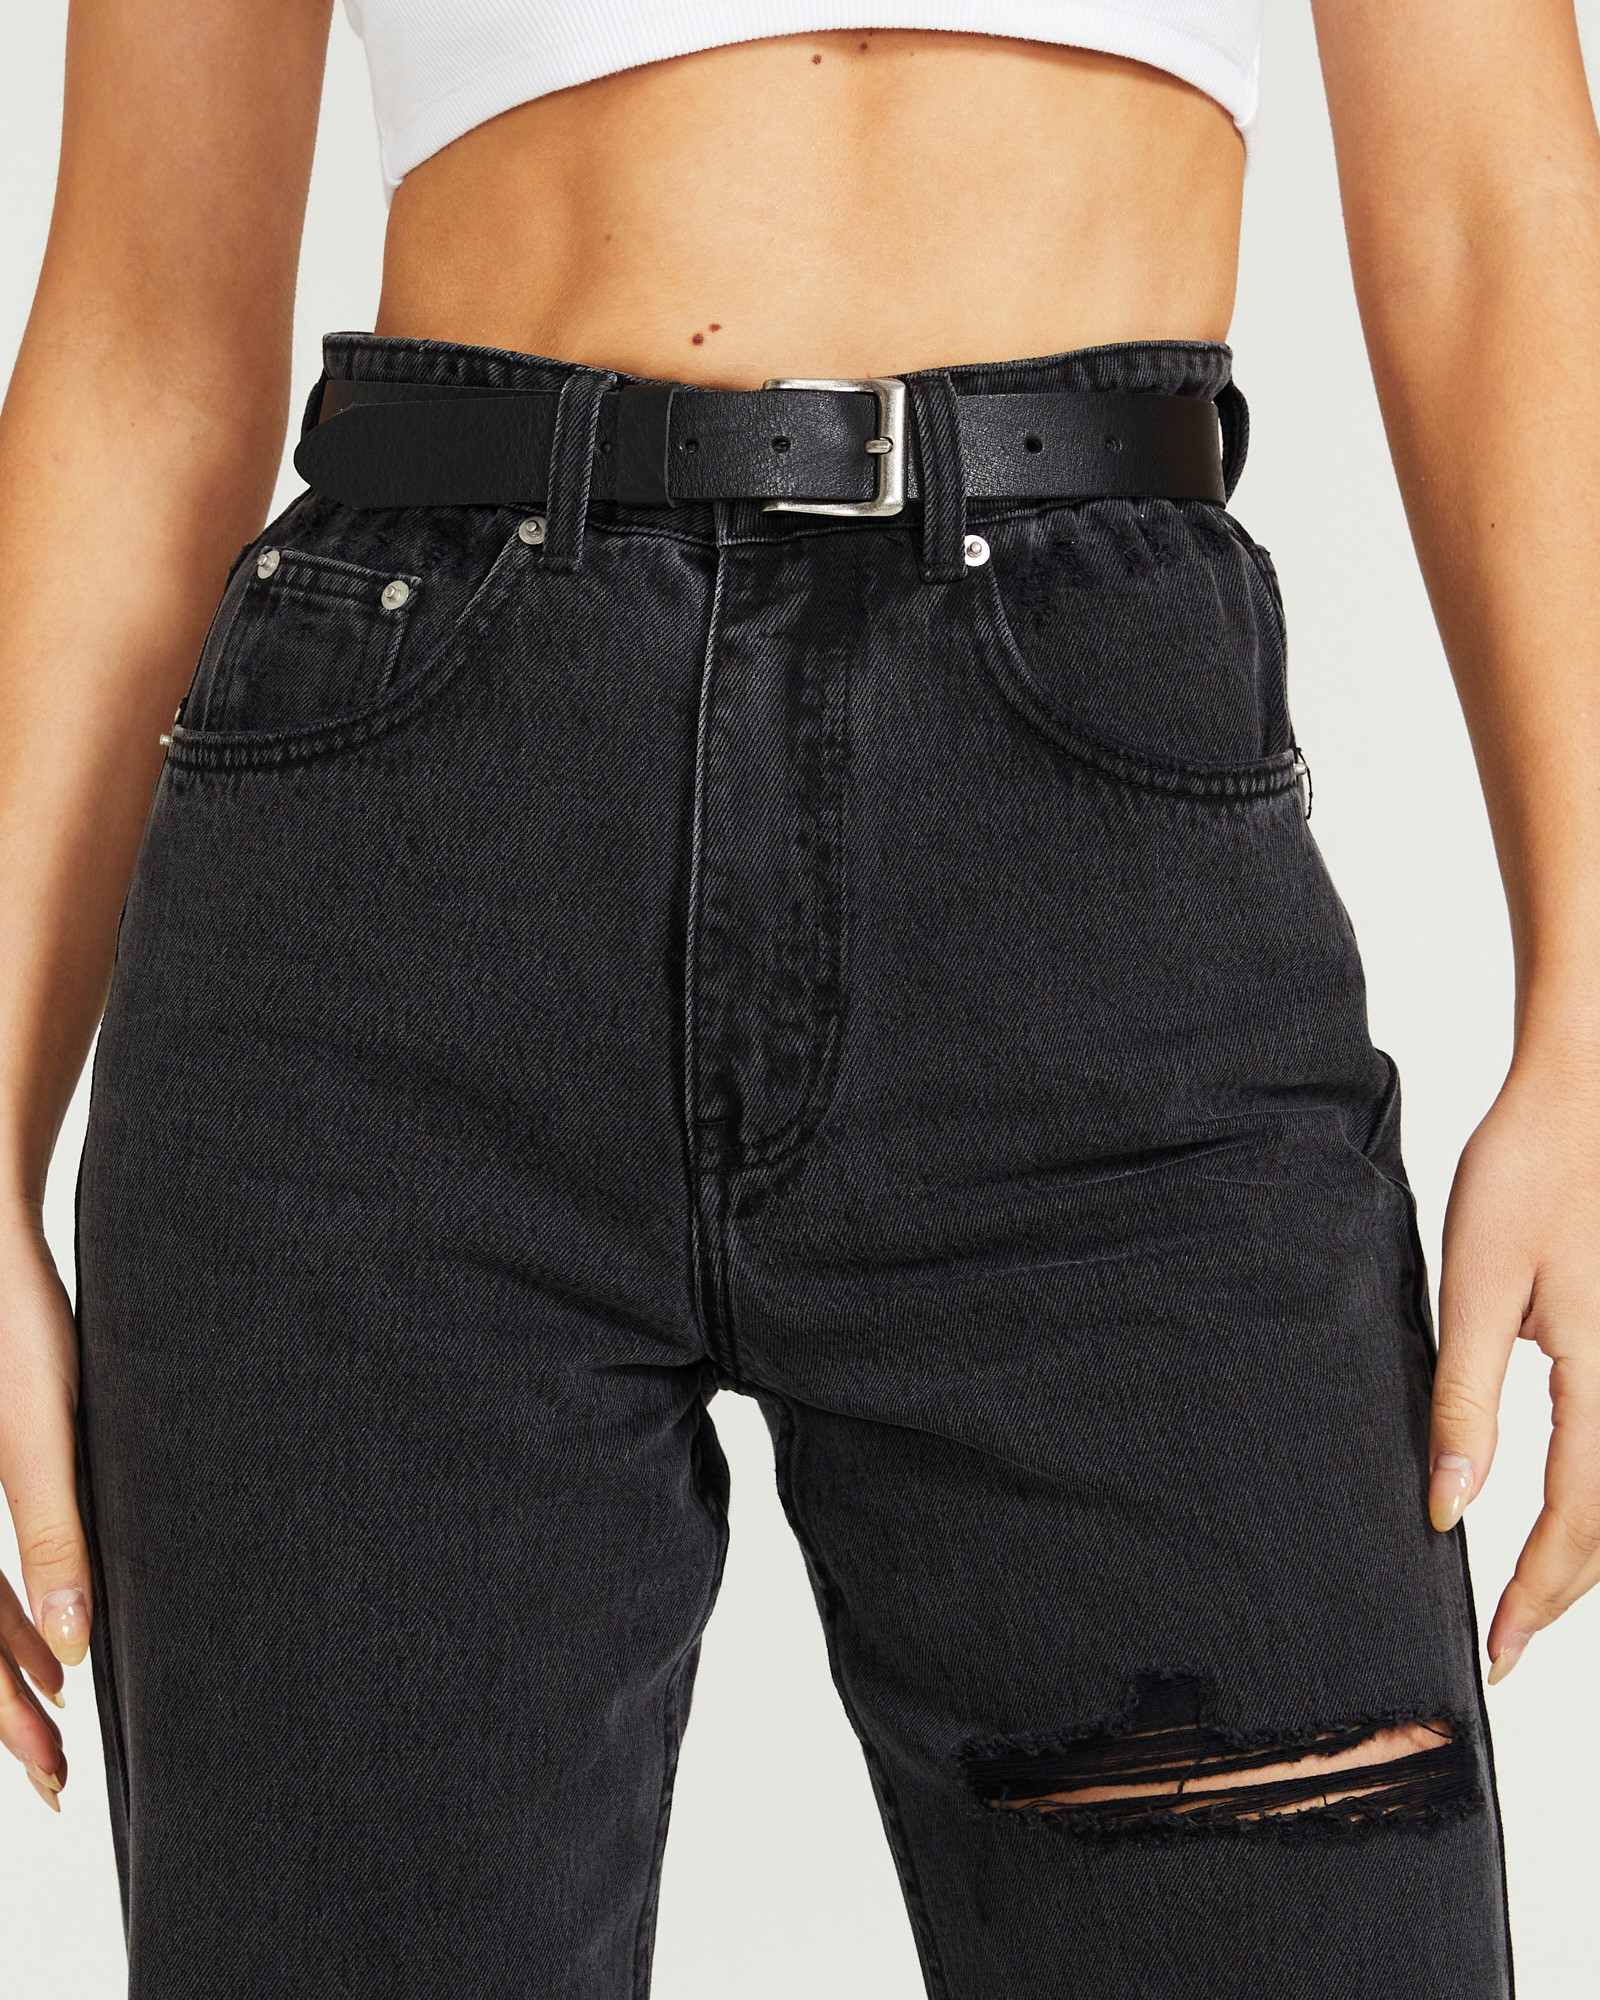 Don't Ask Amanda - Genuine Leather Belt Black 17120800022